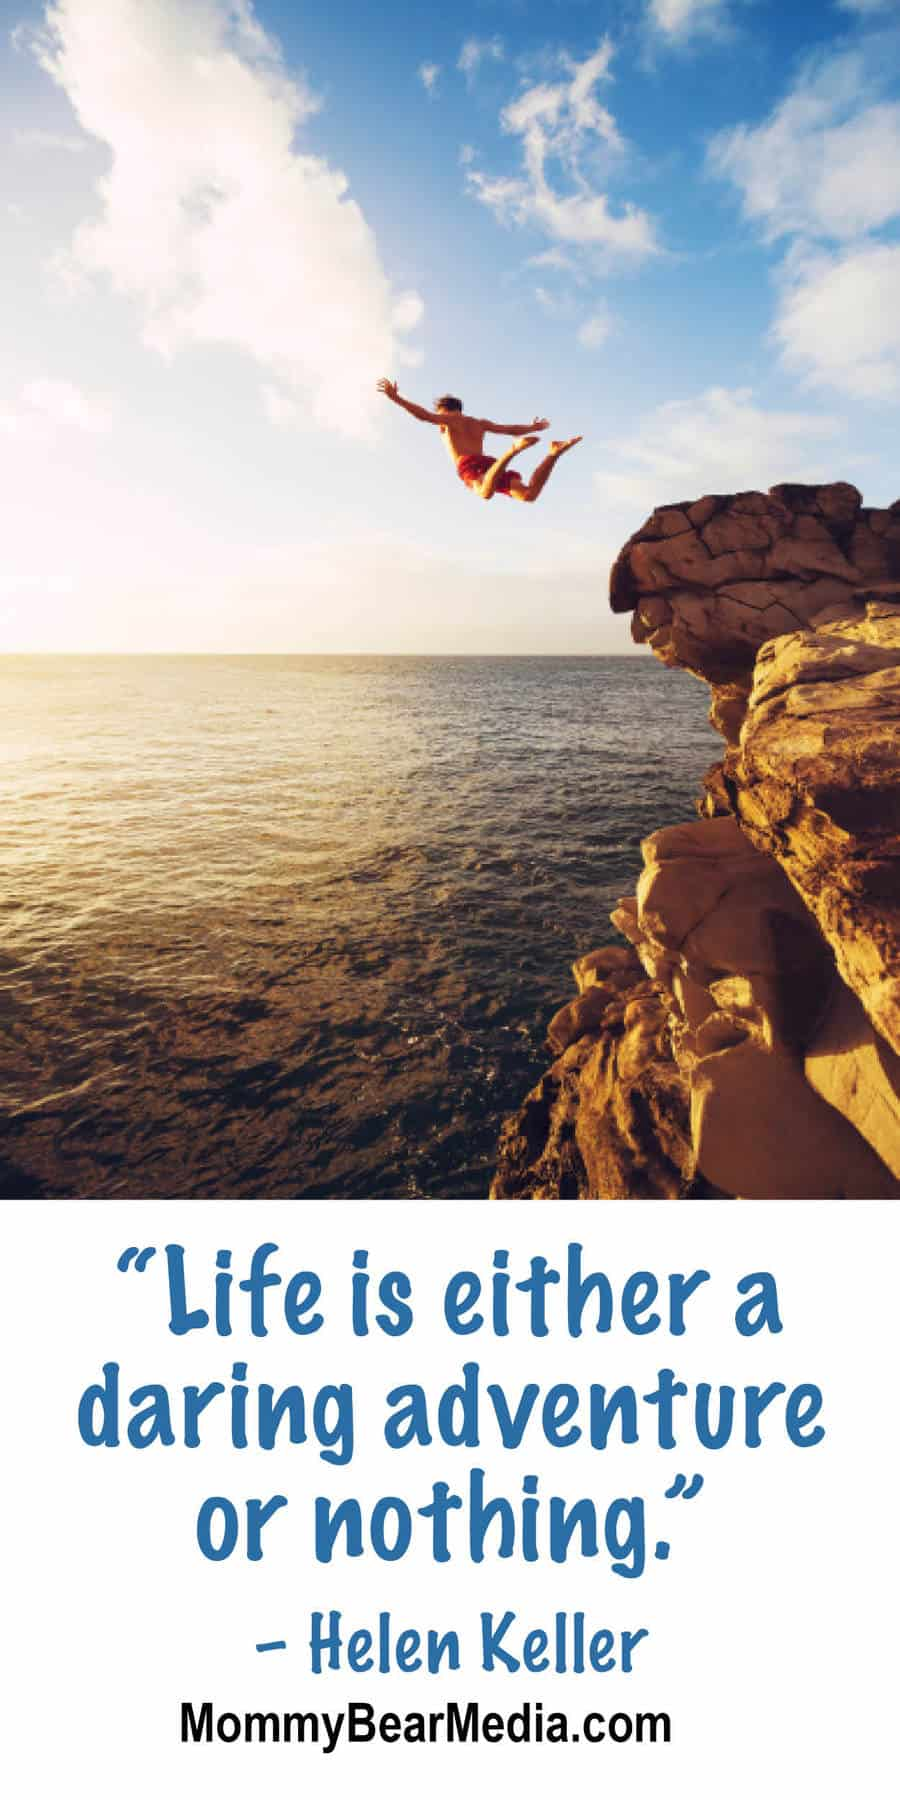 """Life is either a daring adventure or nothing."" – Helen Keller"